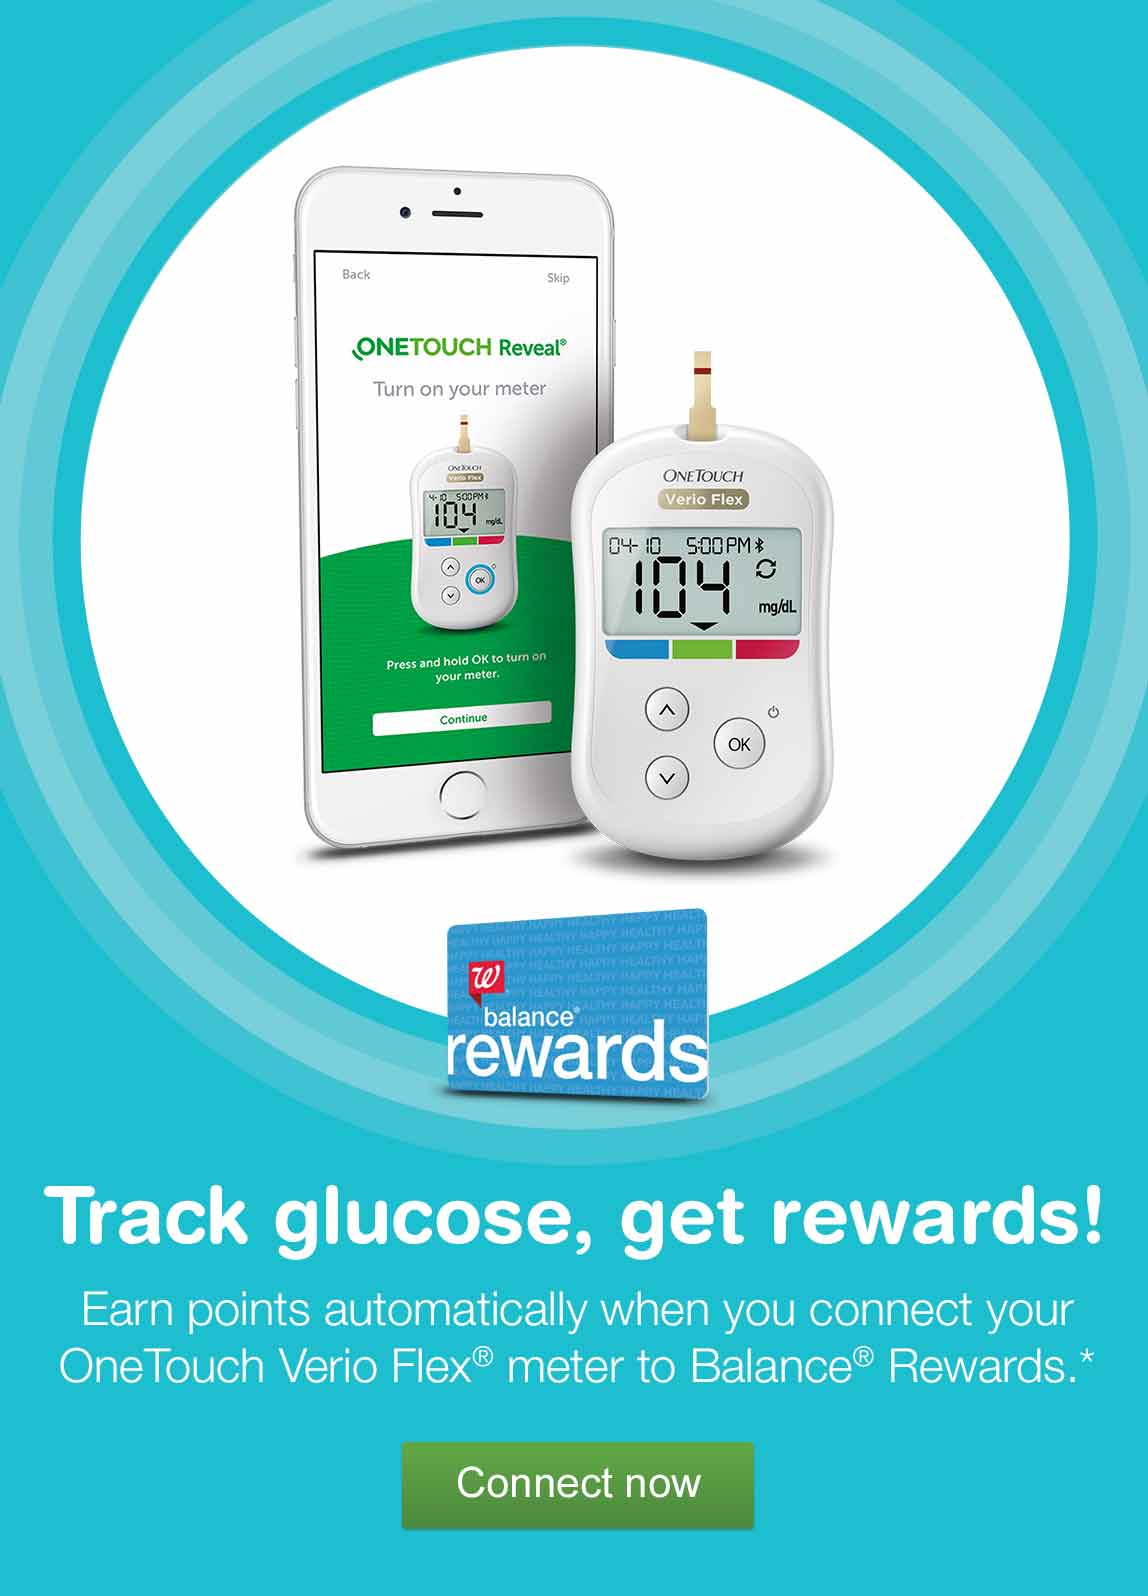 Track glucose, get rewards. Earn points automatically when you connect your OneTouch Verio Flex(R) to Balance(R) Rewards.* Connect now.